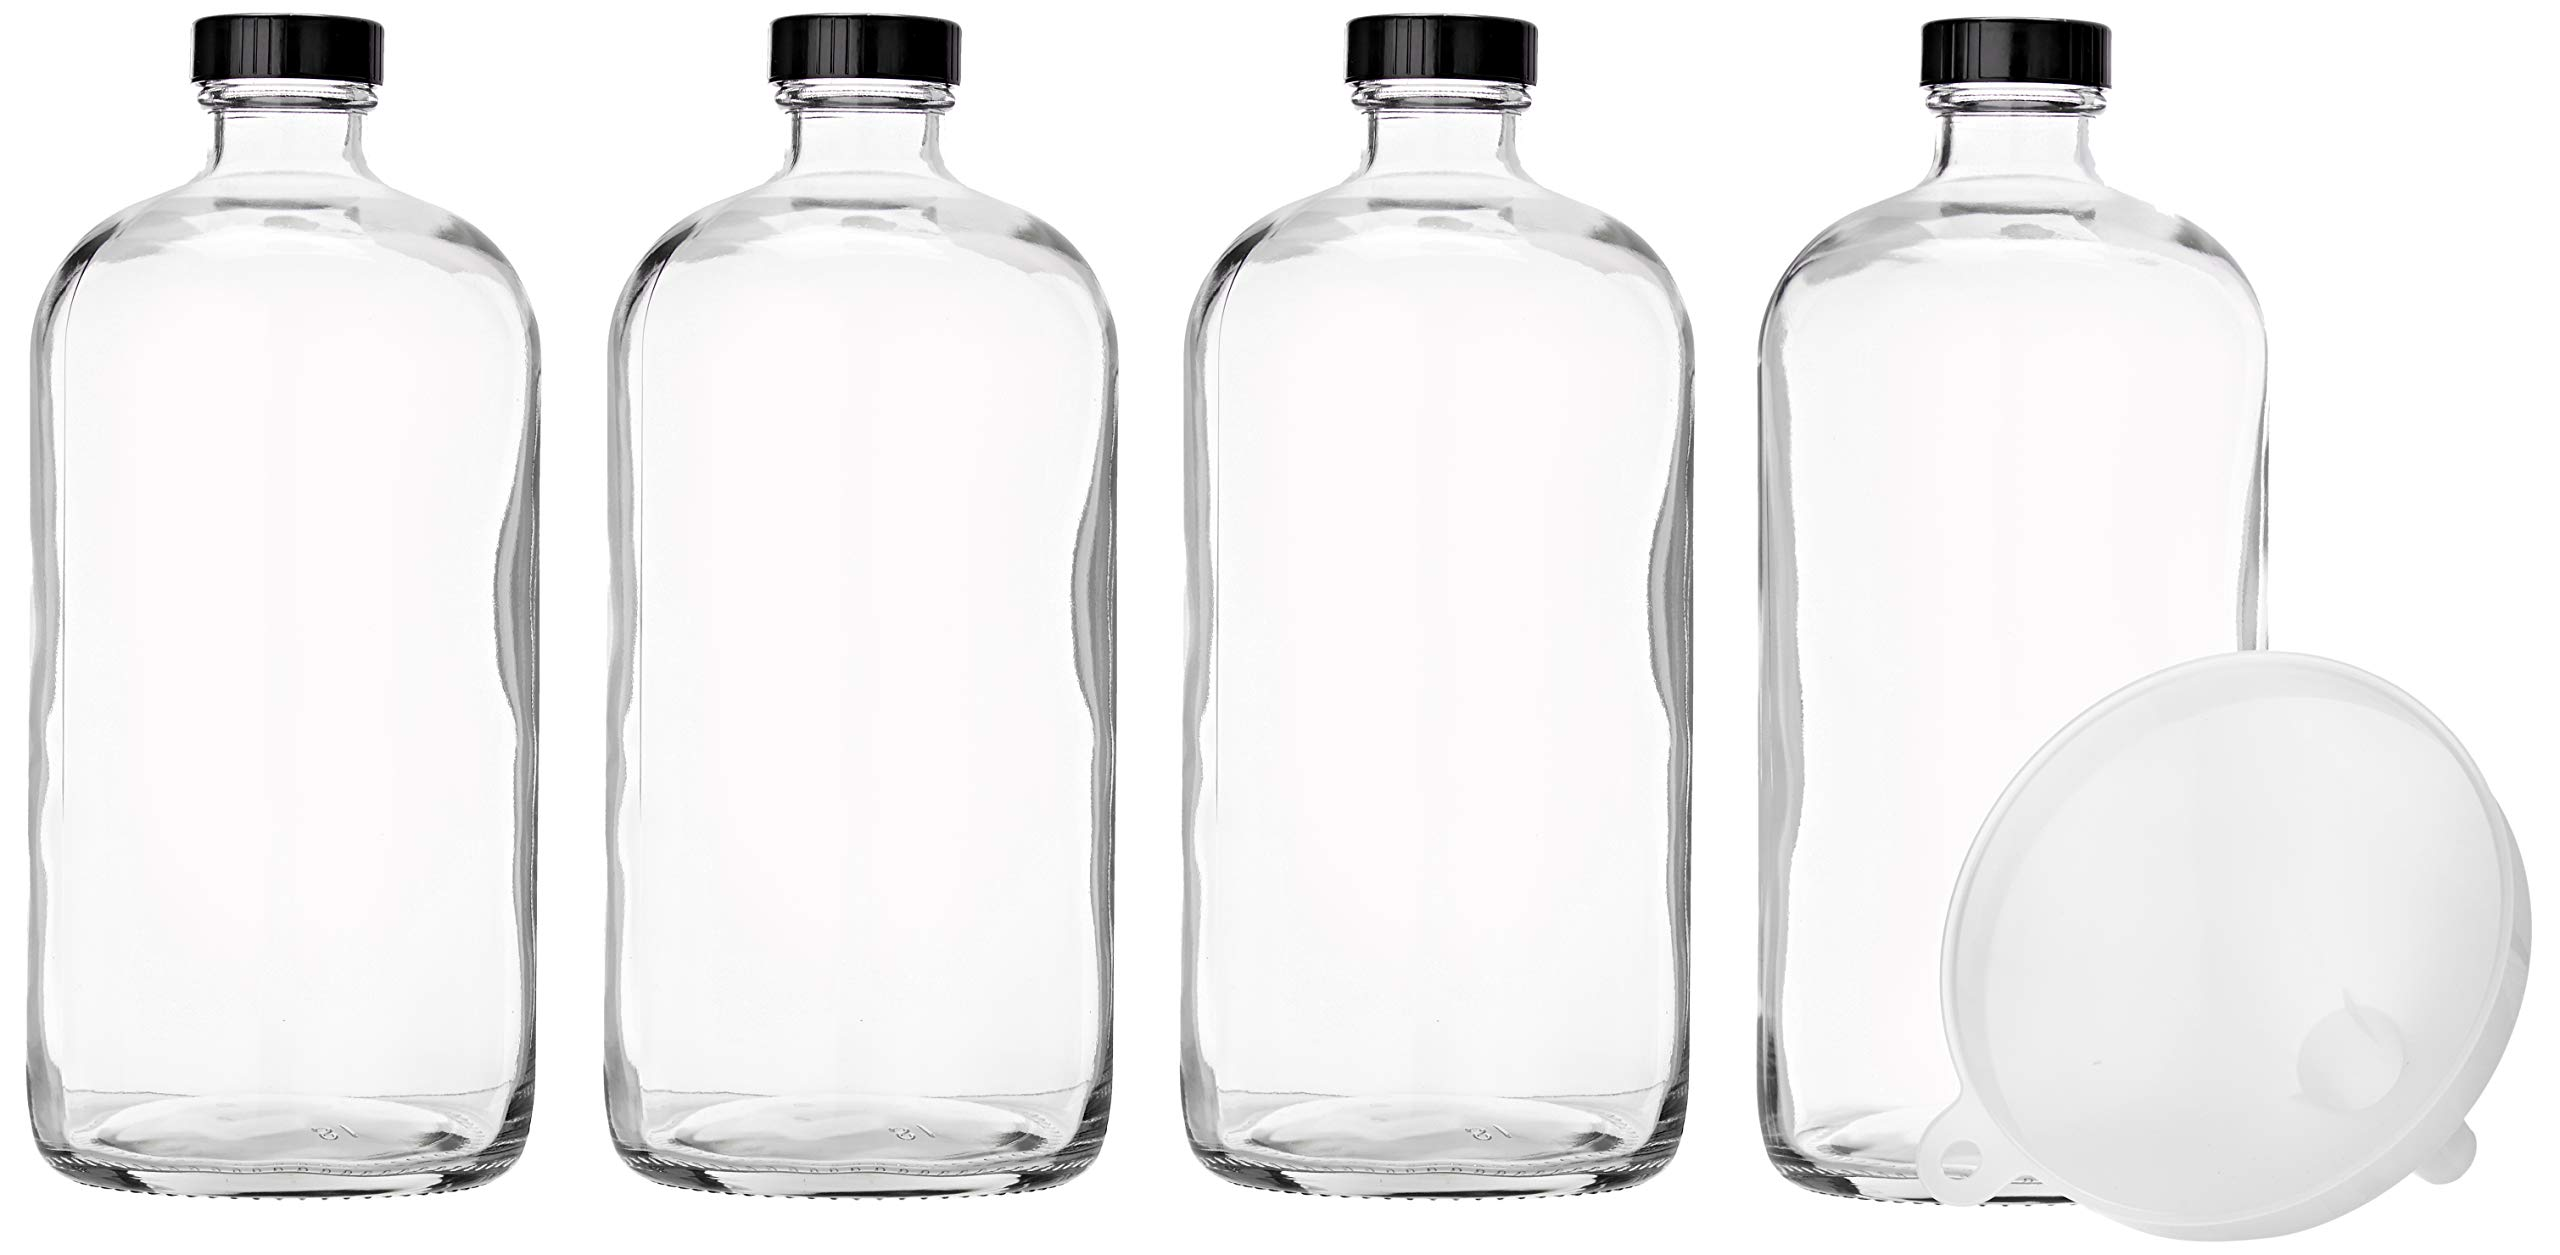 4 Pack - 32oz Boston Round Flint Clear Glass Growler Kombucha Bottles- with Phenolic Poly Cone Insert Caps - Tight Seal for Secondary Kombucha Fermentation - with Plastic Funnel for Easy Pouring